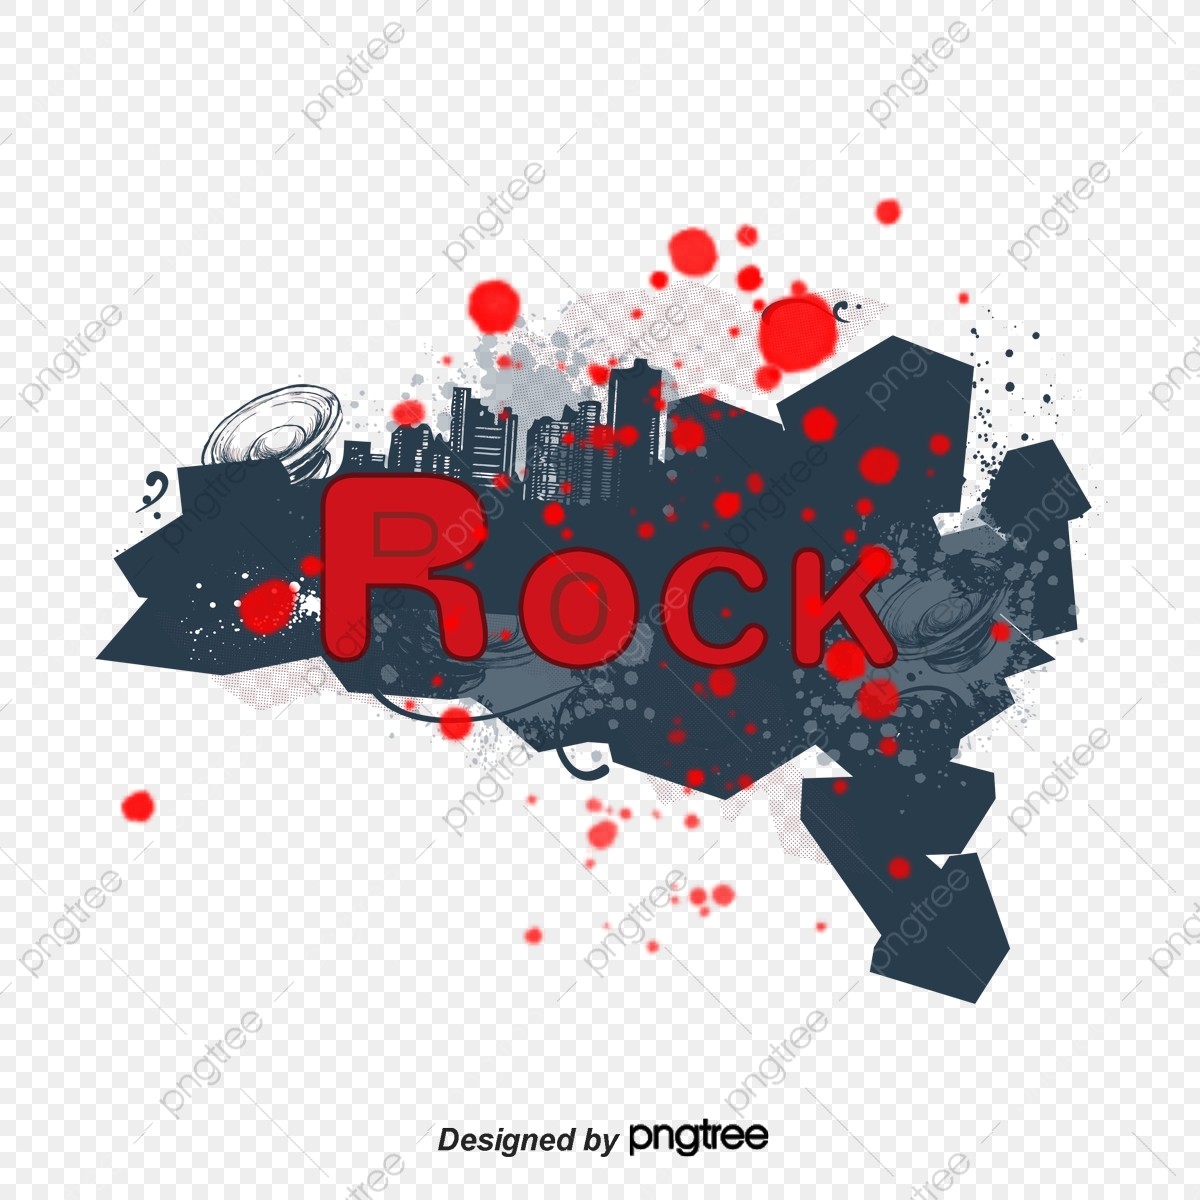 Rock, Music, Culture And Art PNG Transparent Clipart Image